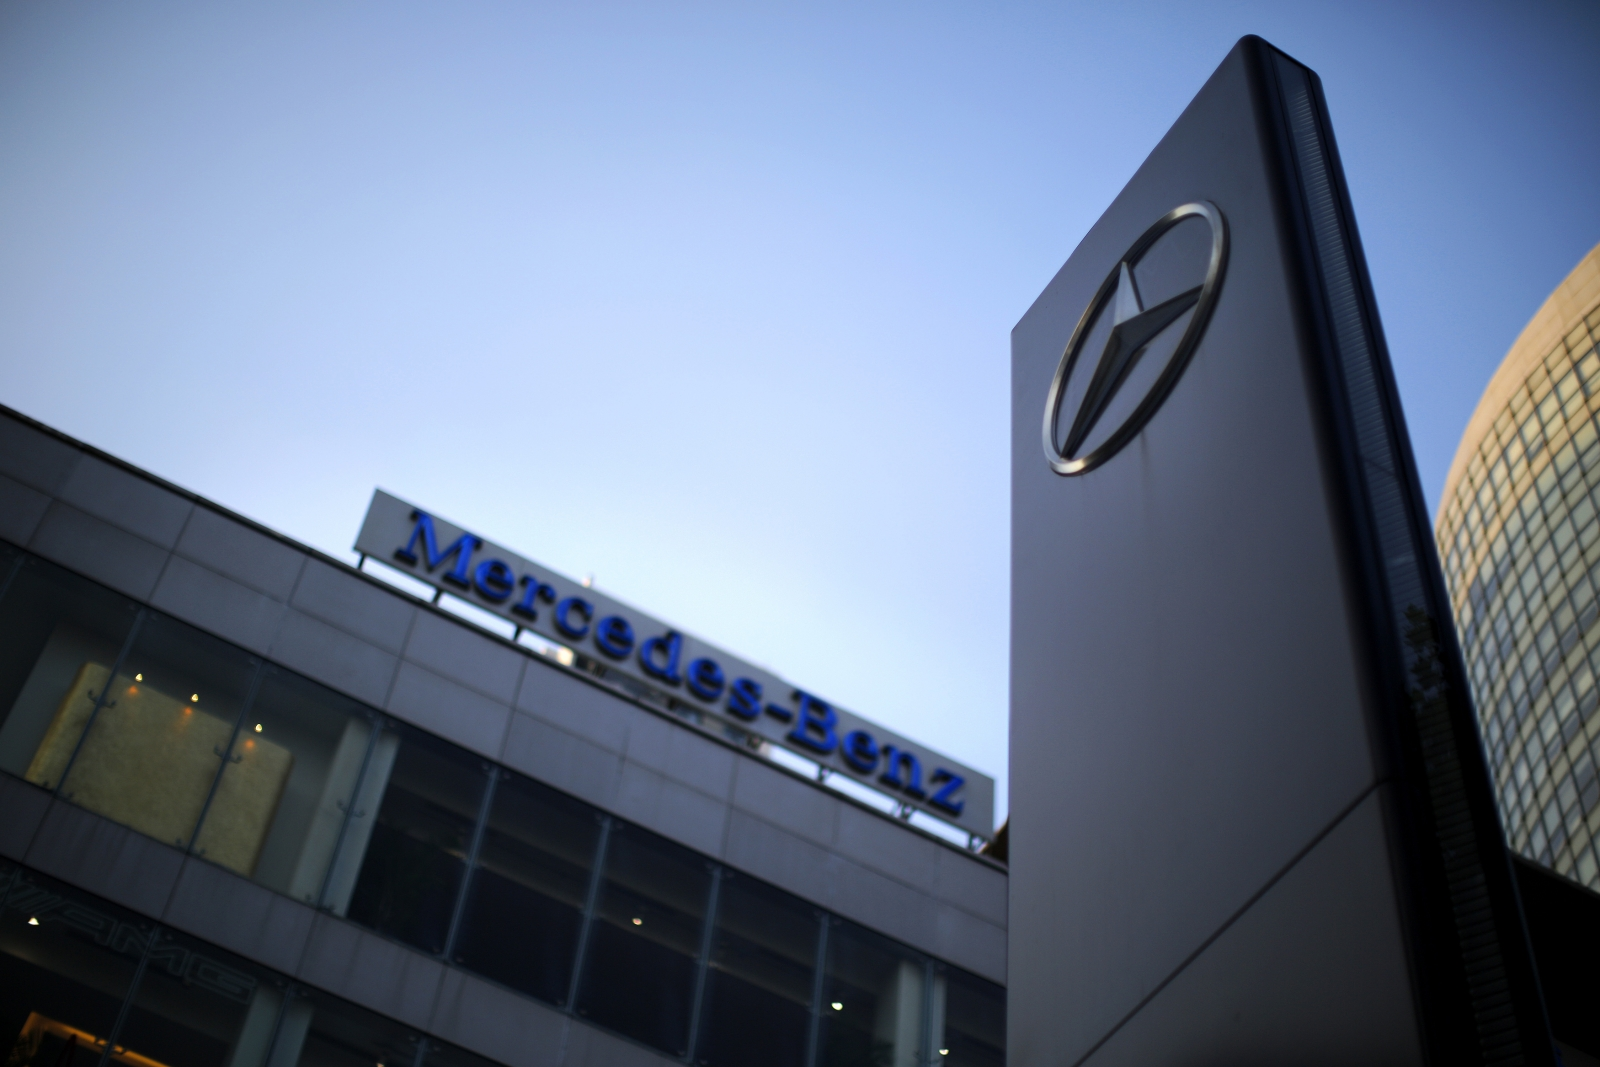 Mercedes Benz counts on South India for future sales after the Supreme Court ban on large diesel vehicles in NCR